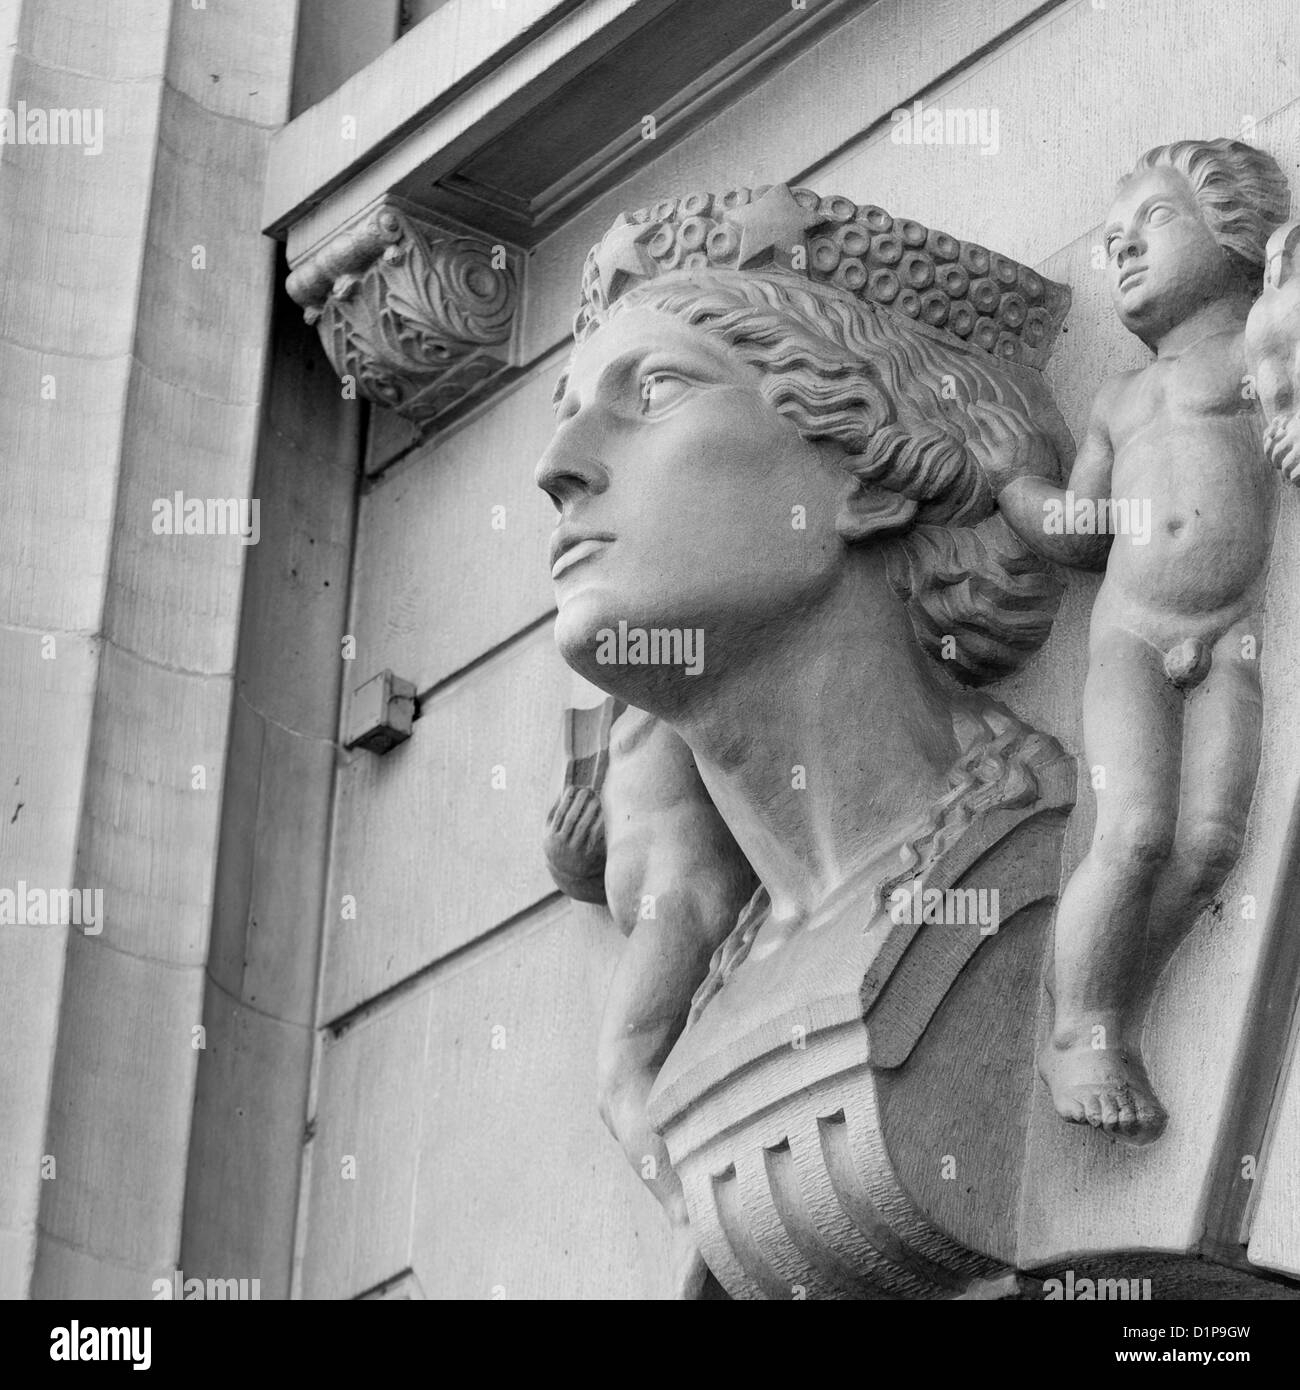 Carving details on a wall, Bahnhofstrasse, Zurich, Switzerland - Stock Image